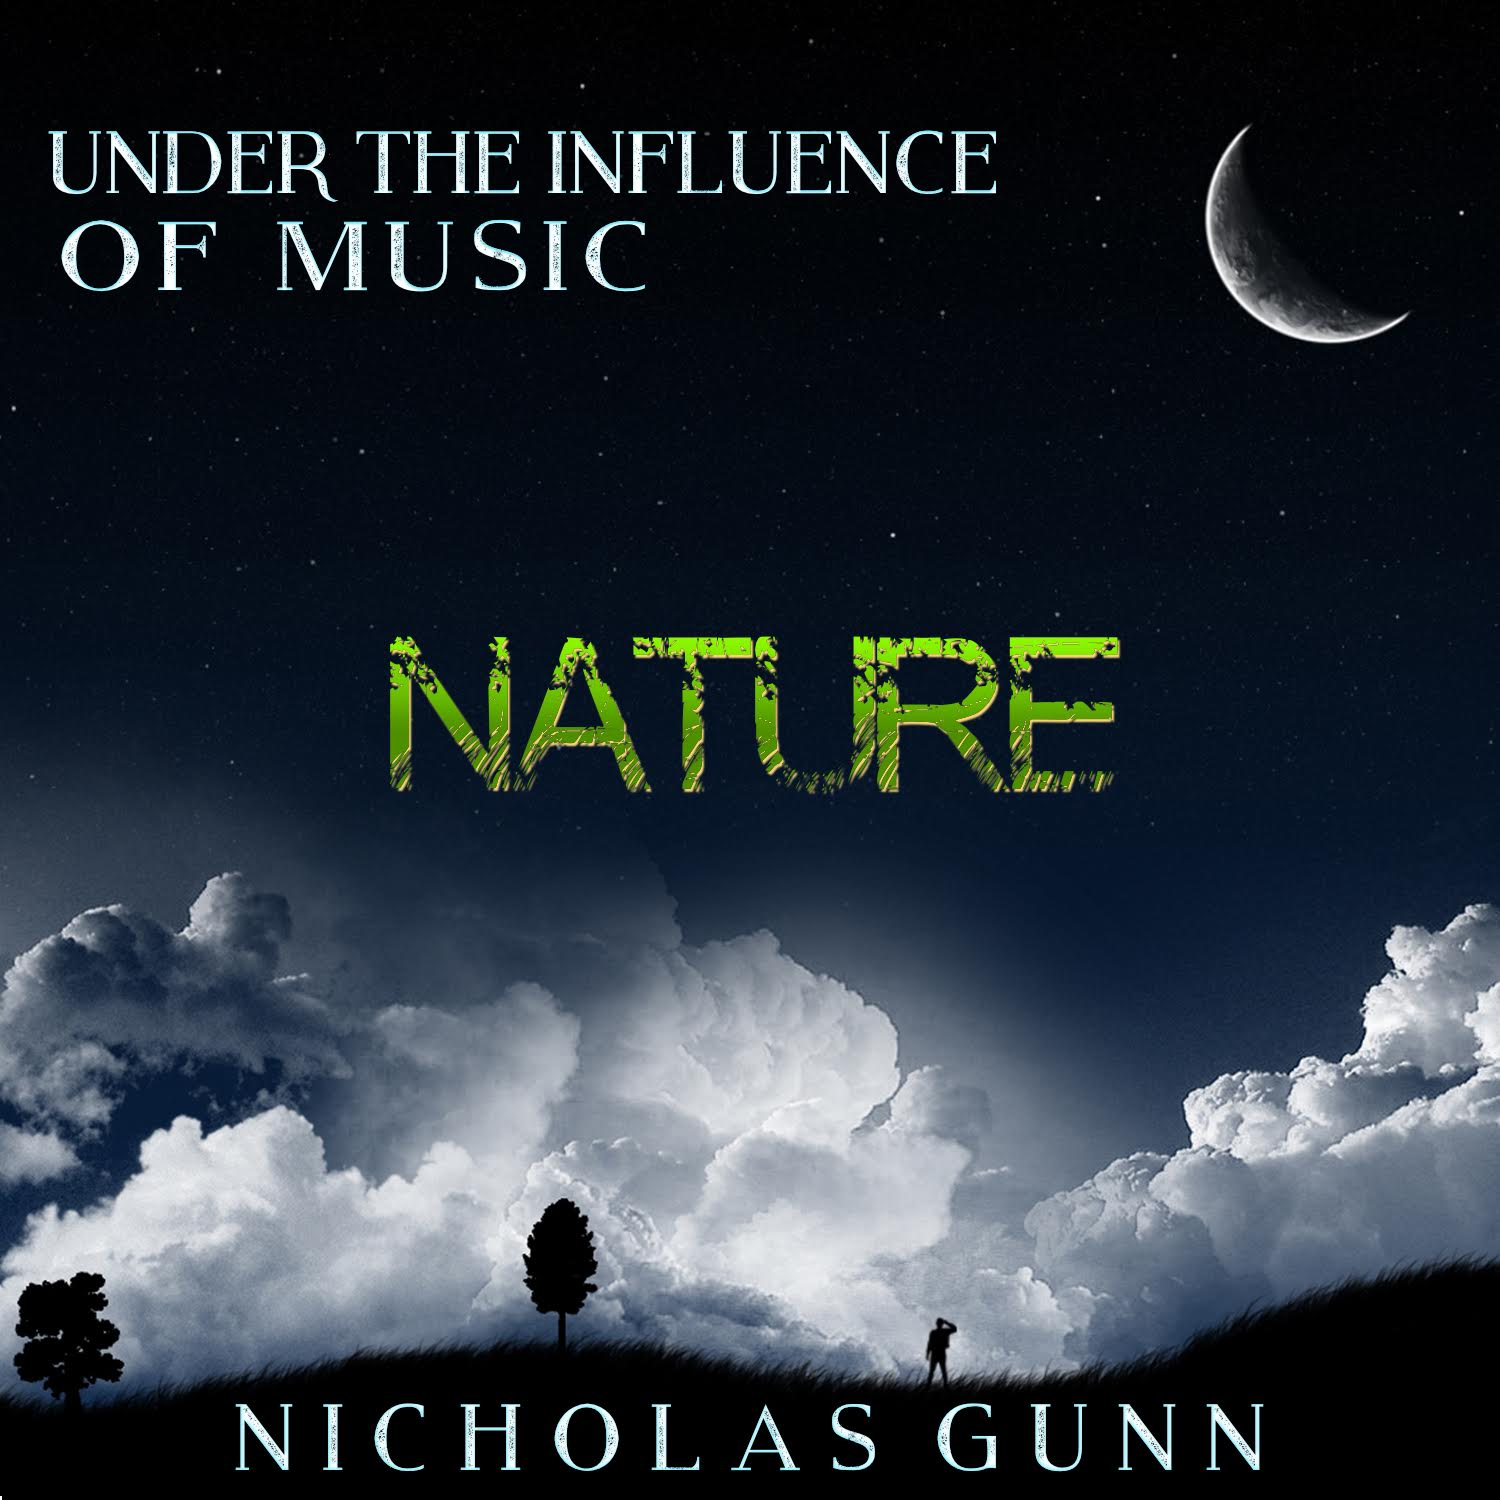 """Nicholas Gunn Reminds Us of the Beauty of """"Nature"""" Under the Influence of Music!"""